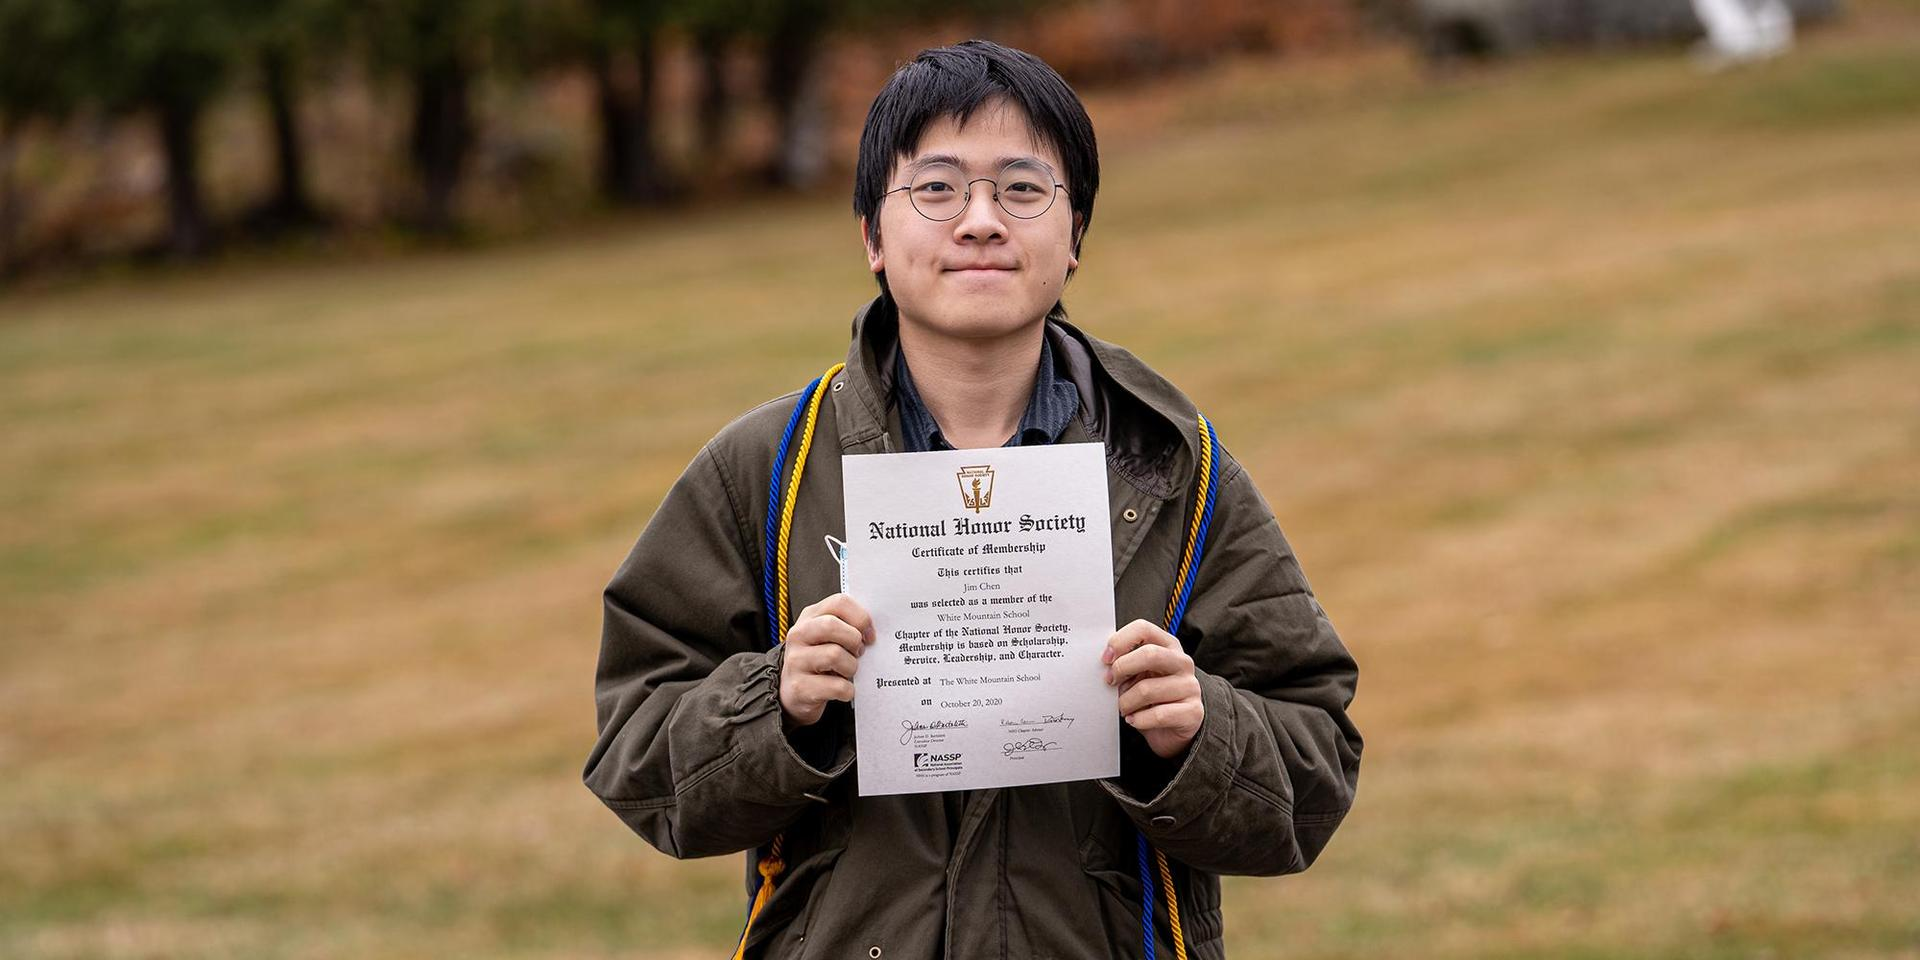 A student wearing his NHS cords and proudly showing off his NHS certificate.